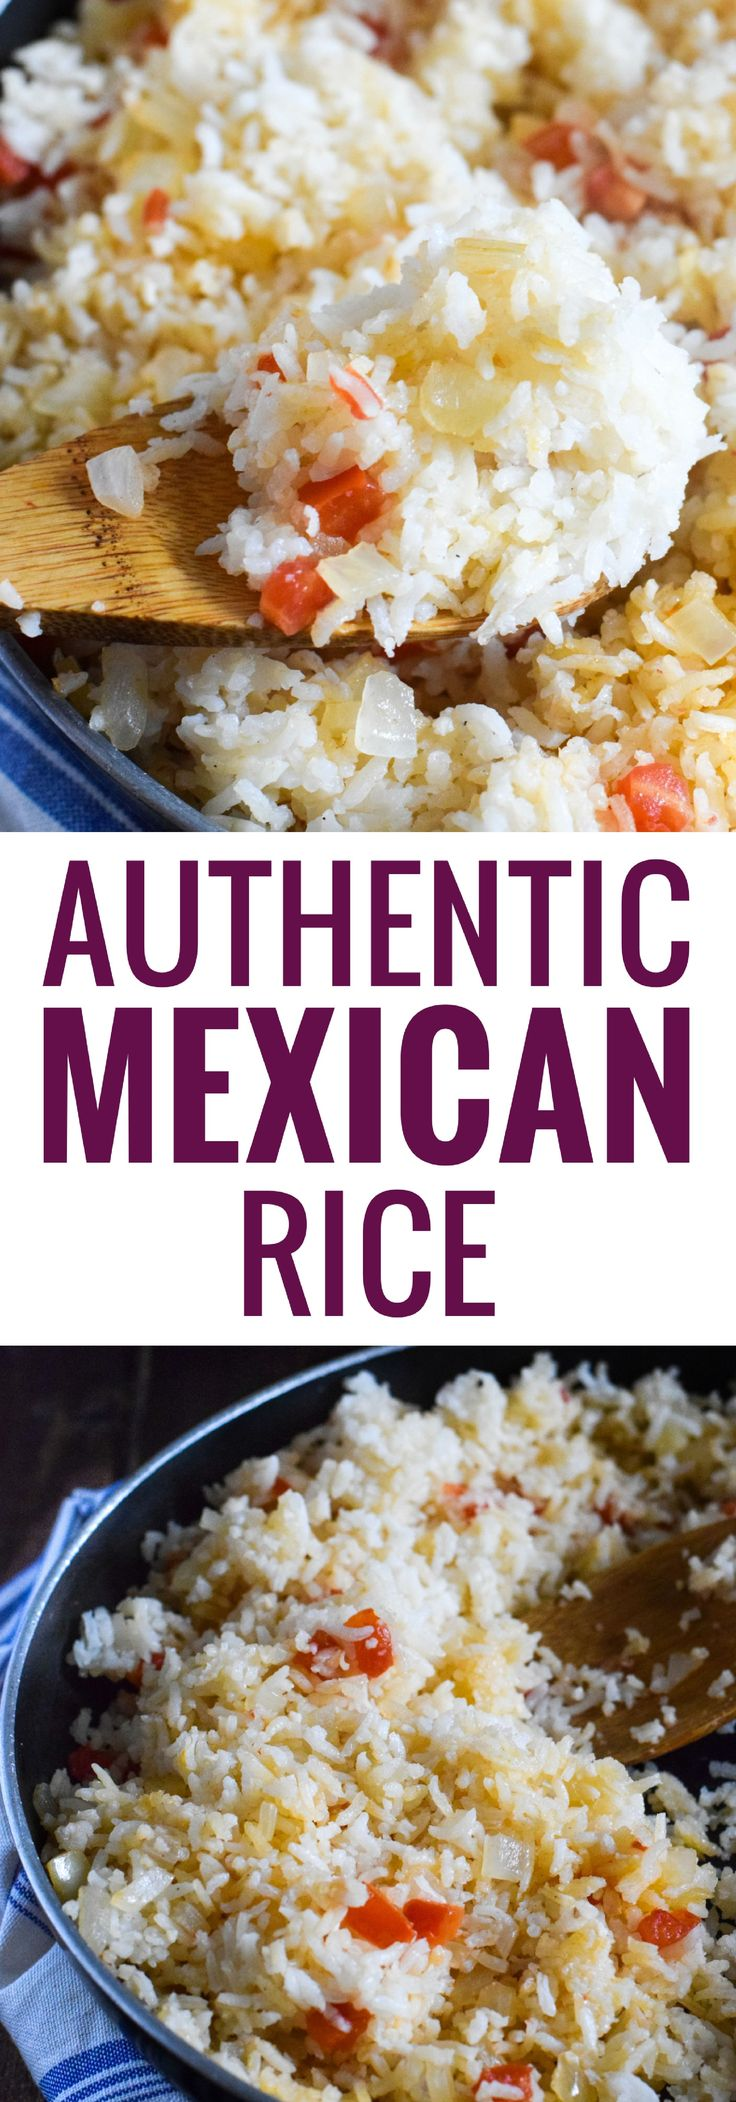 Made with simple ingredients like chopped tomatoes, onions and garlic, my Mom's Authentic Mexican Rice is the perfect side dish for any meal. Vegetarian, Gluten Free, Vegan and Dairy Free.